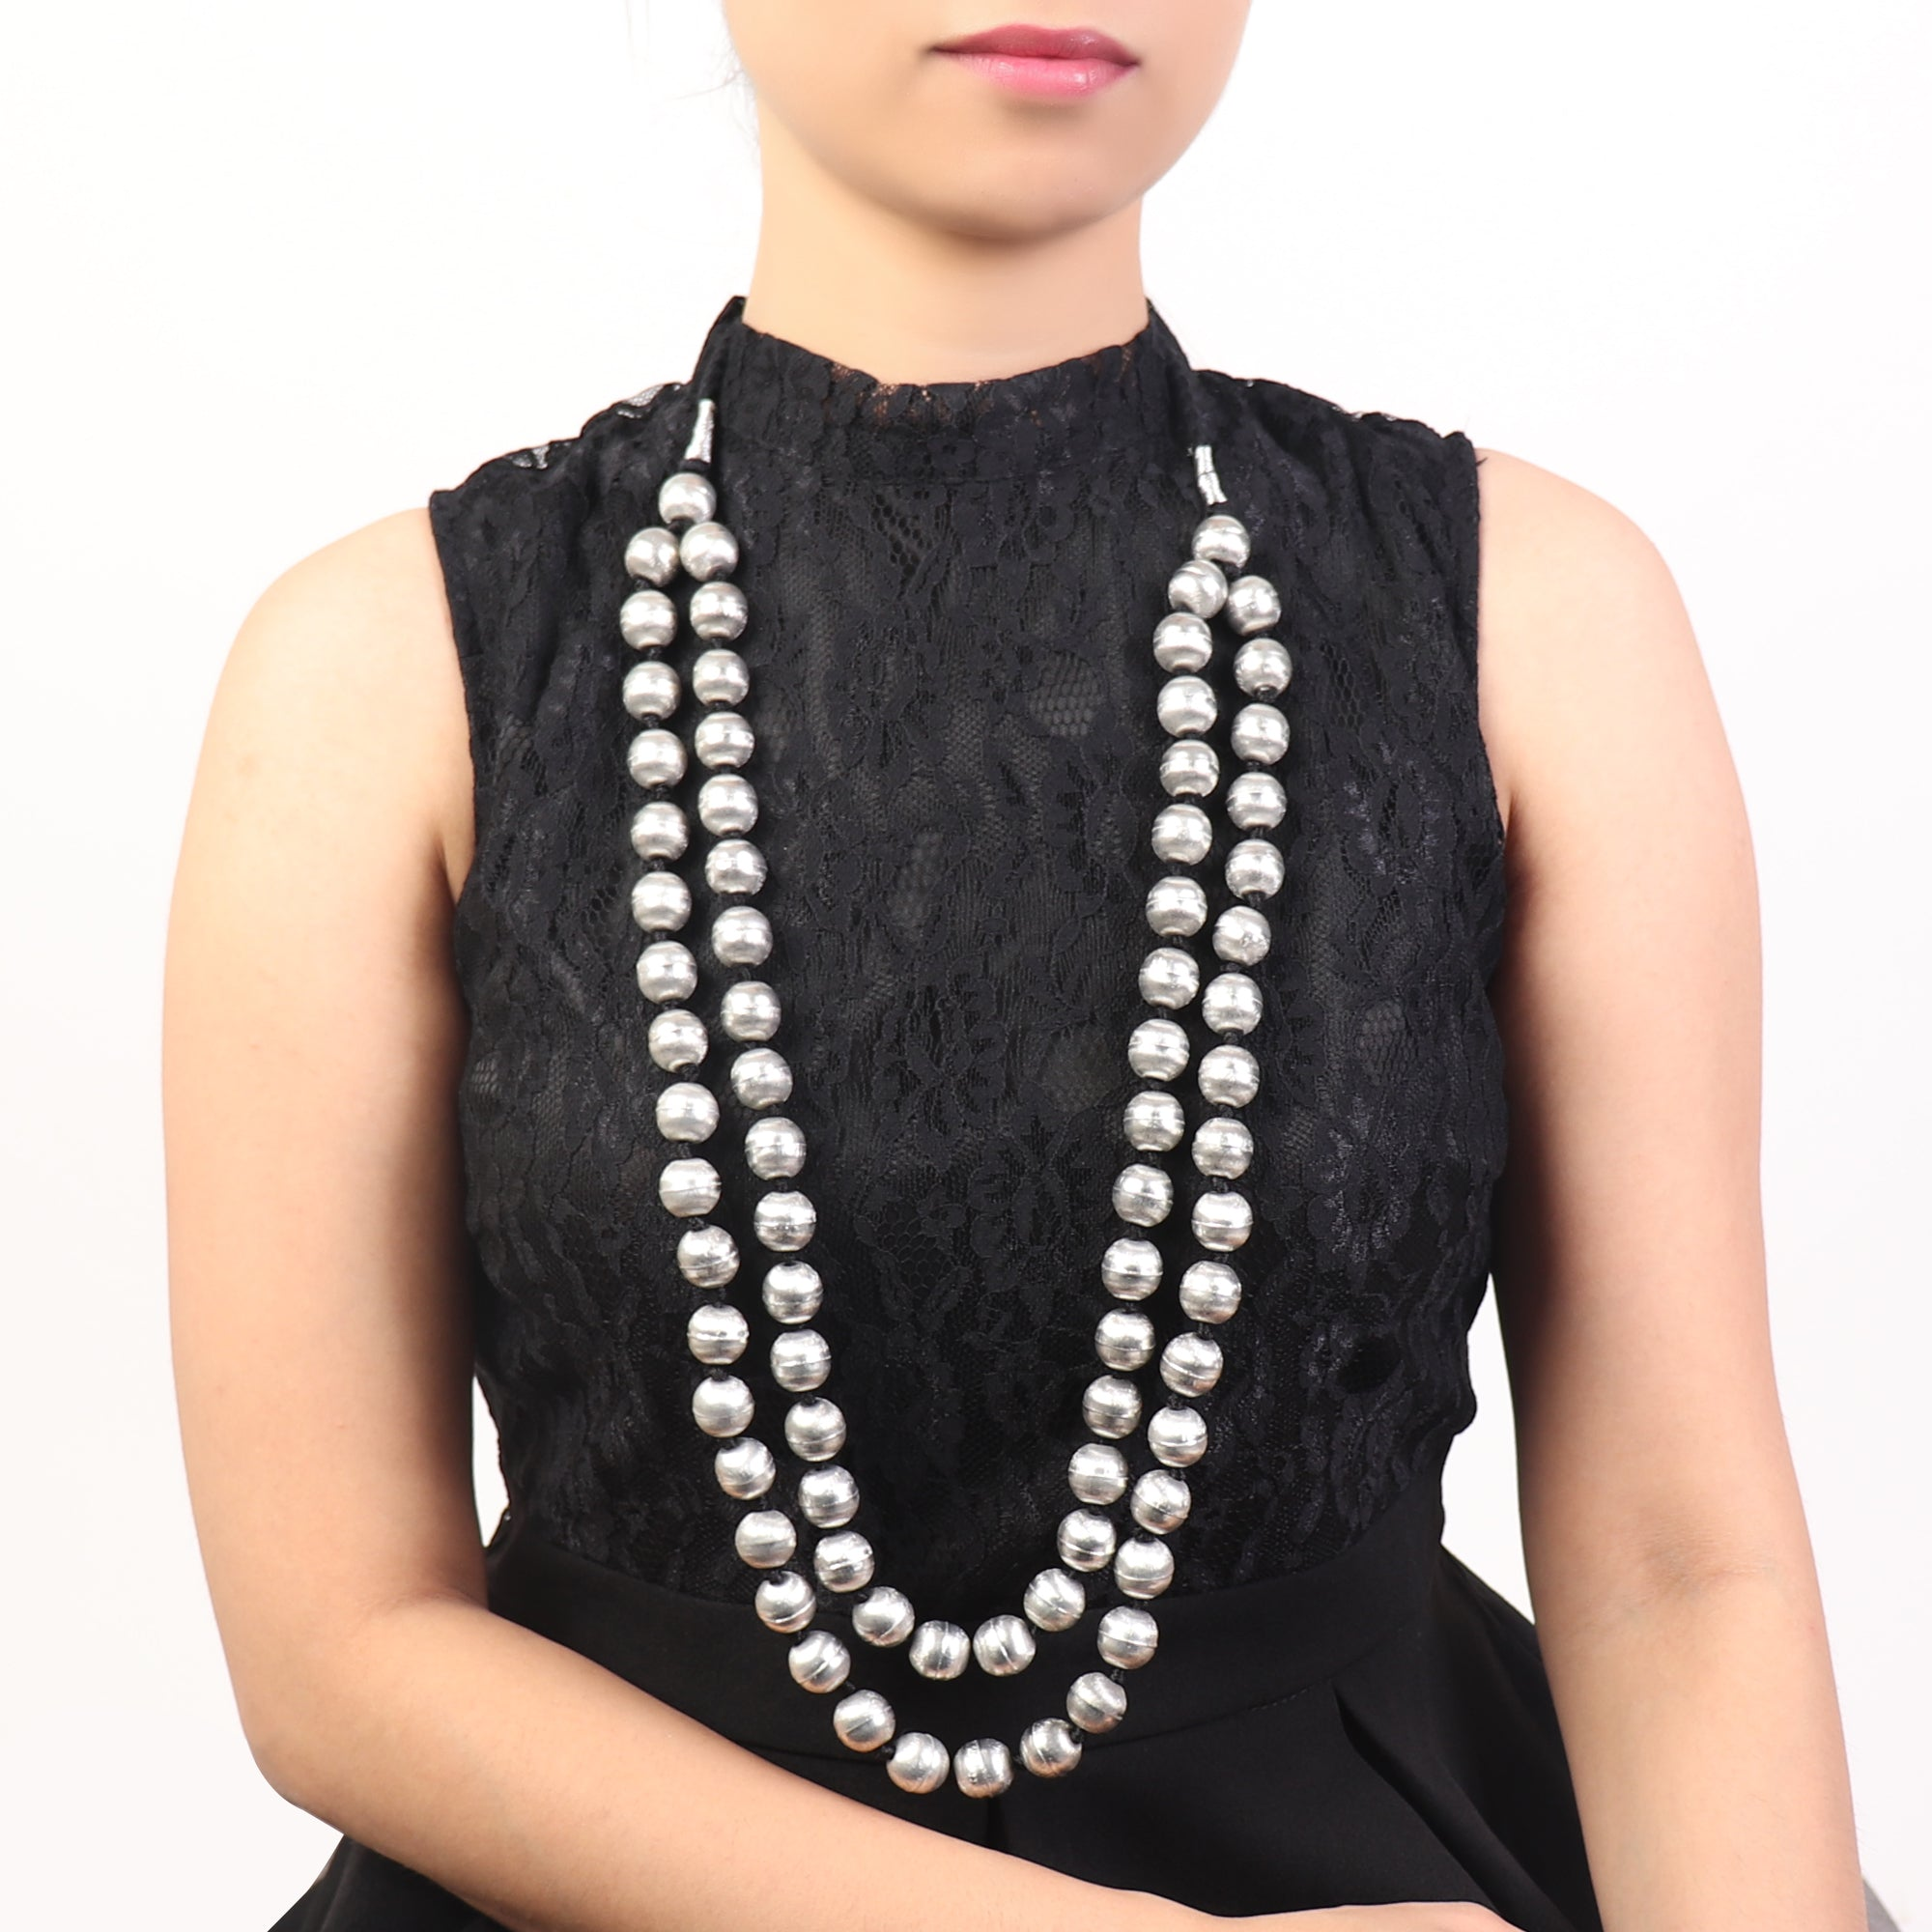 Necklace,Silver Amazeballs Neck Piece - Cippele Multi Store